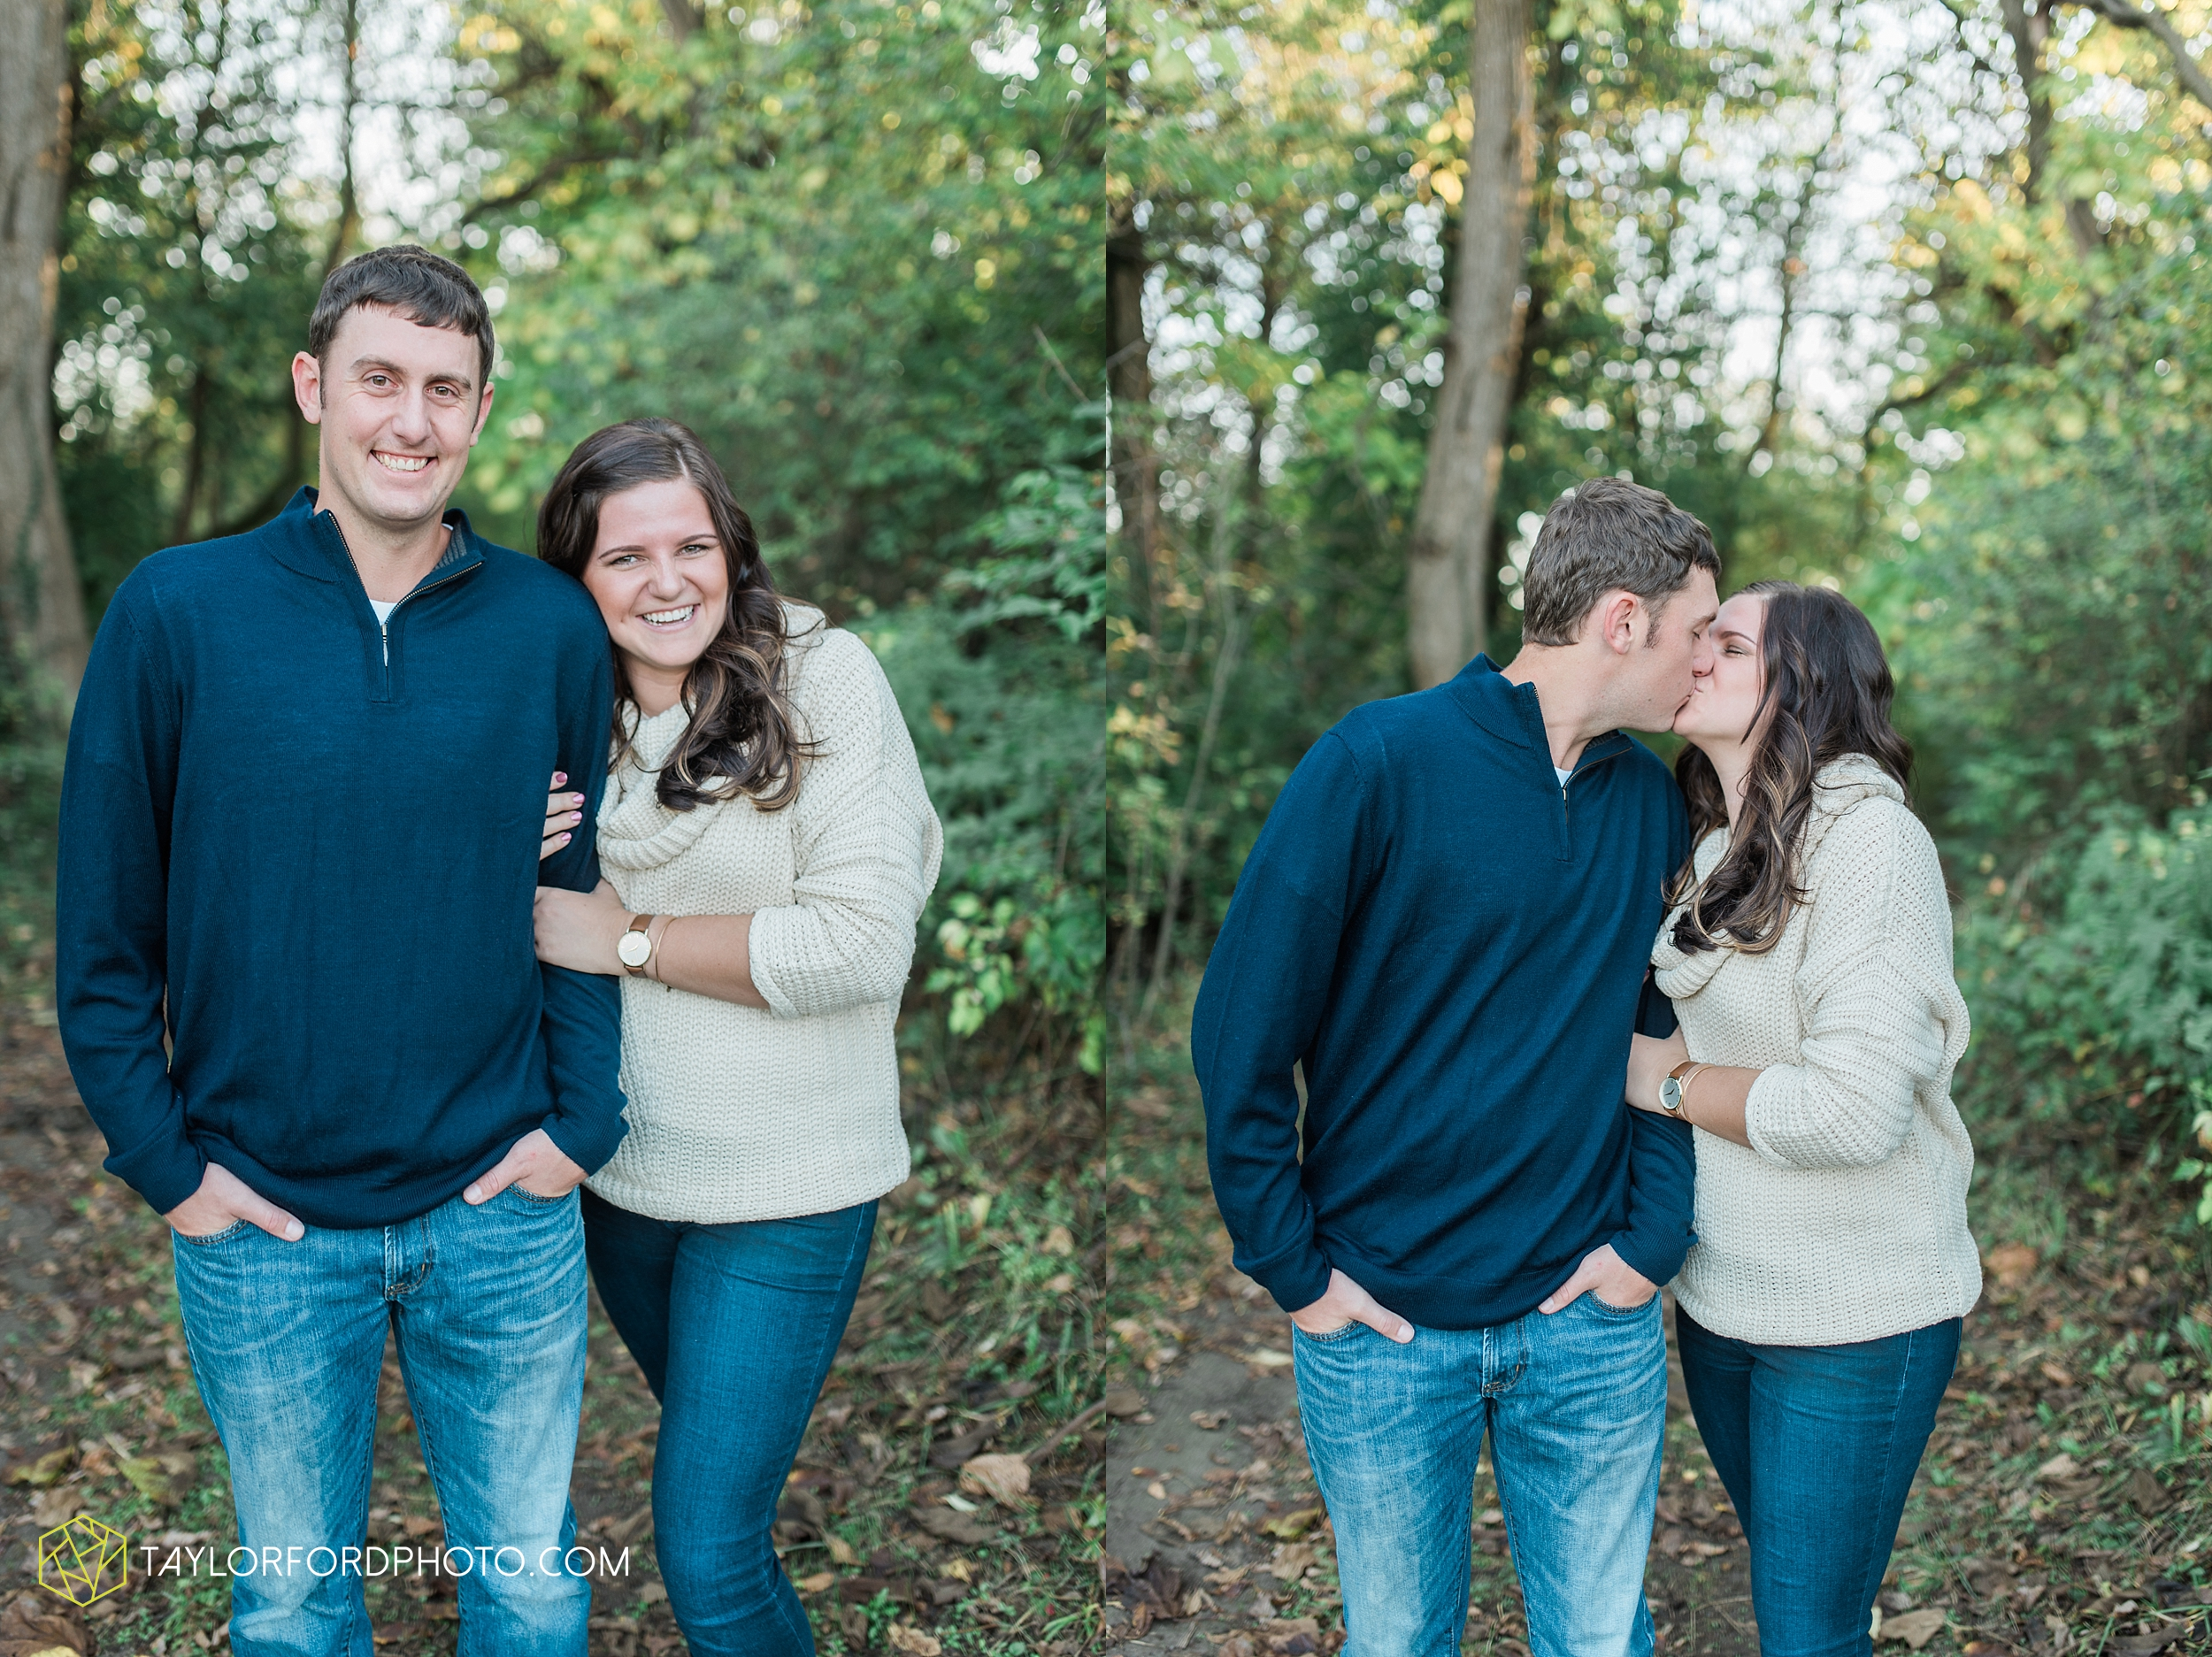 fort-wayne-indiana-engagement-wedding-photographer-Taylor-Ford-Photography-salomon-farm-park_3573.jpg